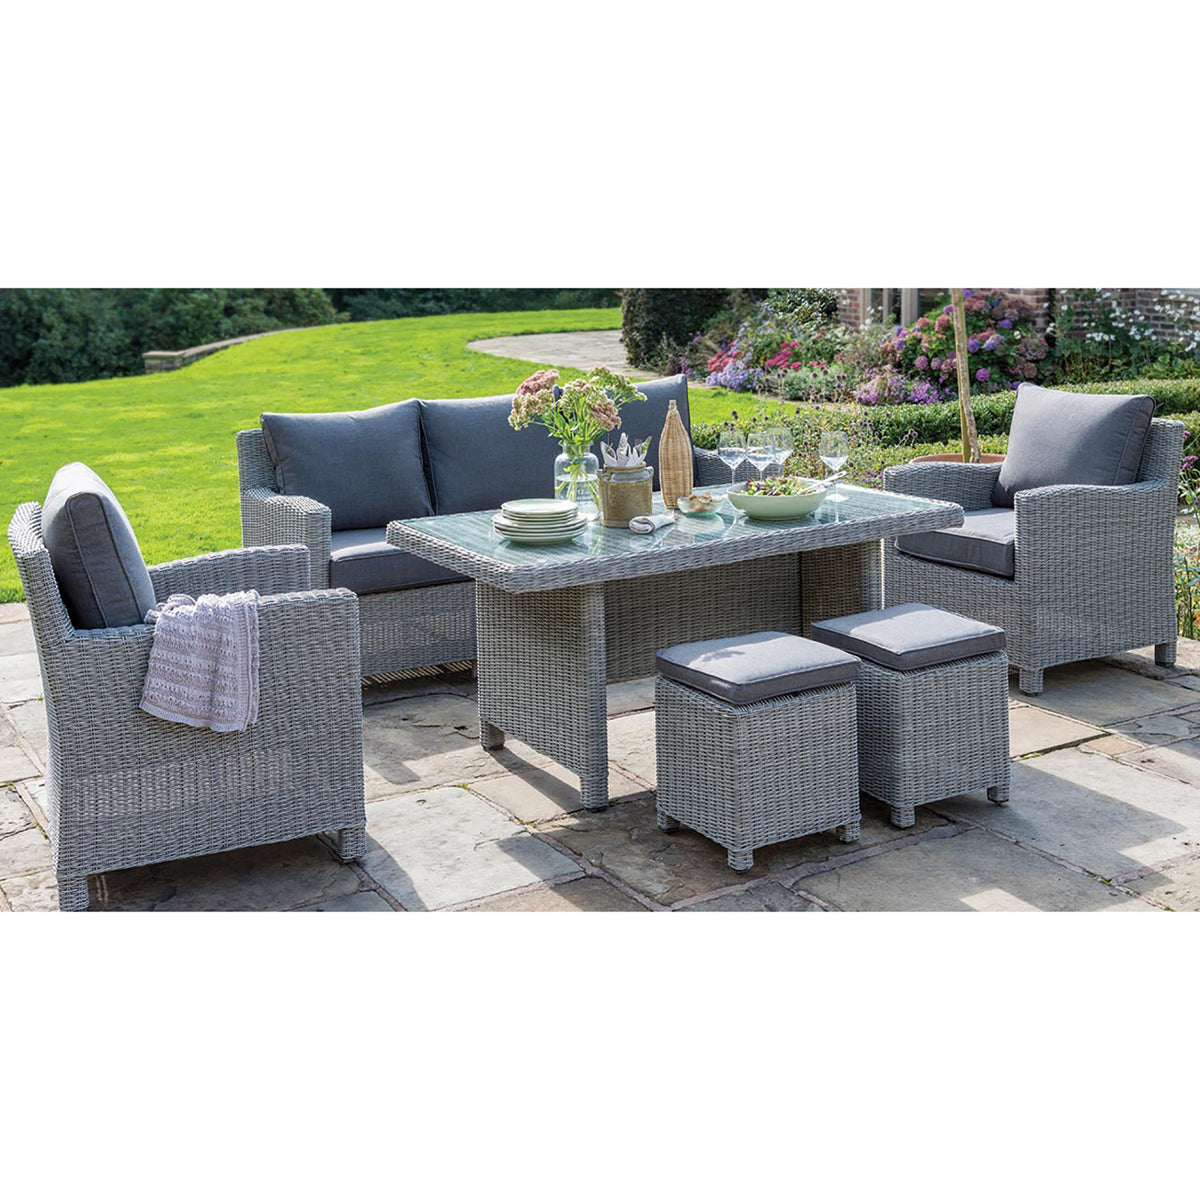 9c5cd47409d1 Kettler Palma Rattan Outdoor Casual Dining Sofa Set - White Wash – Garden  Trends